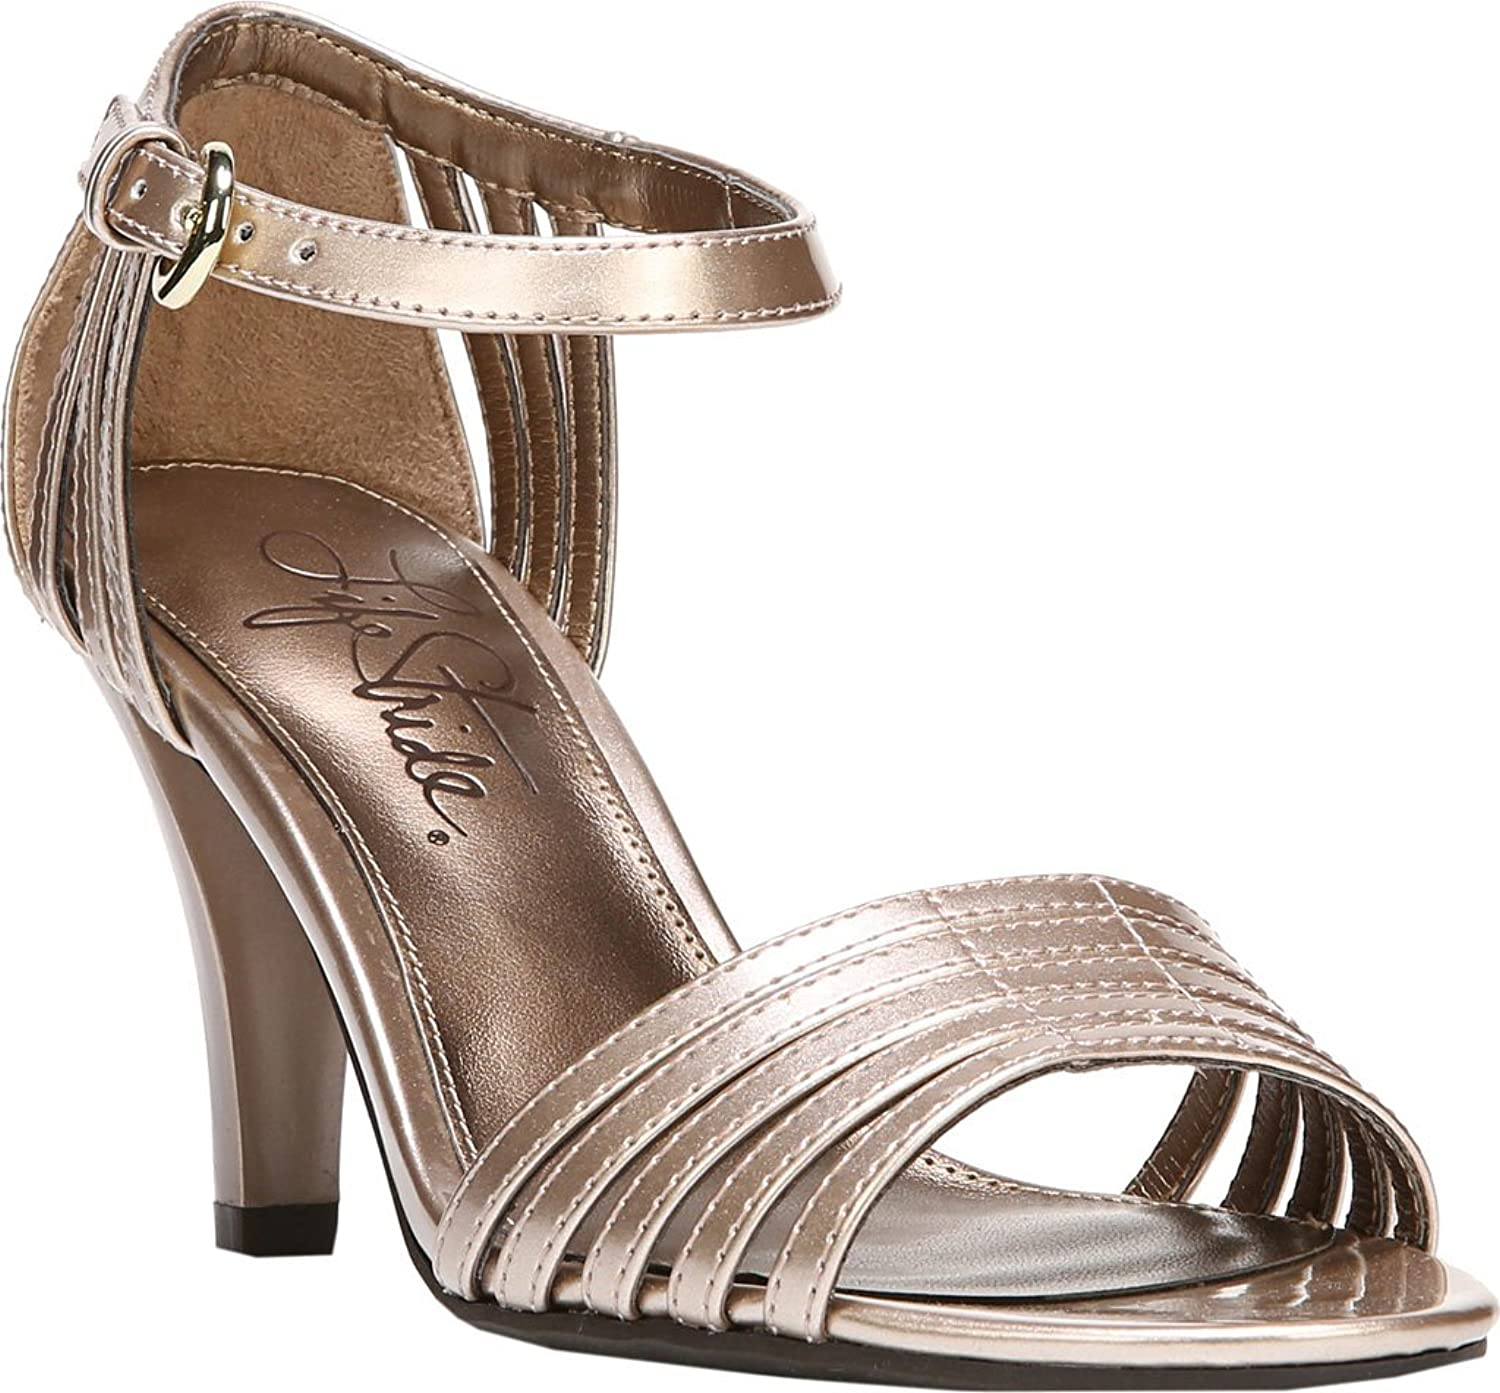 LifeStride Women's Center Ankle Strap Sandal